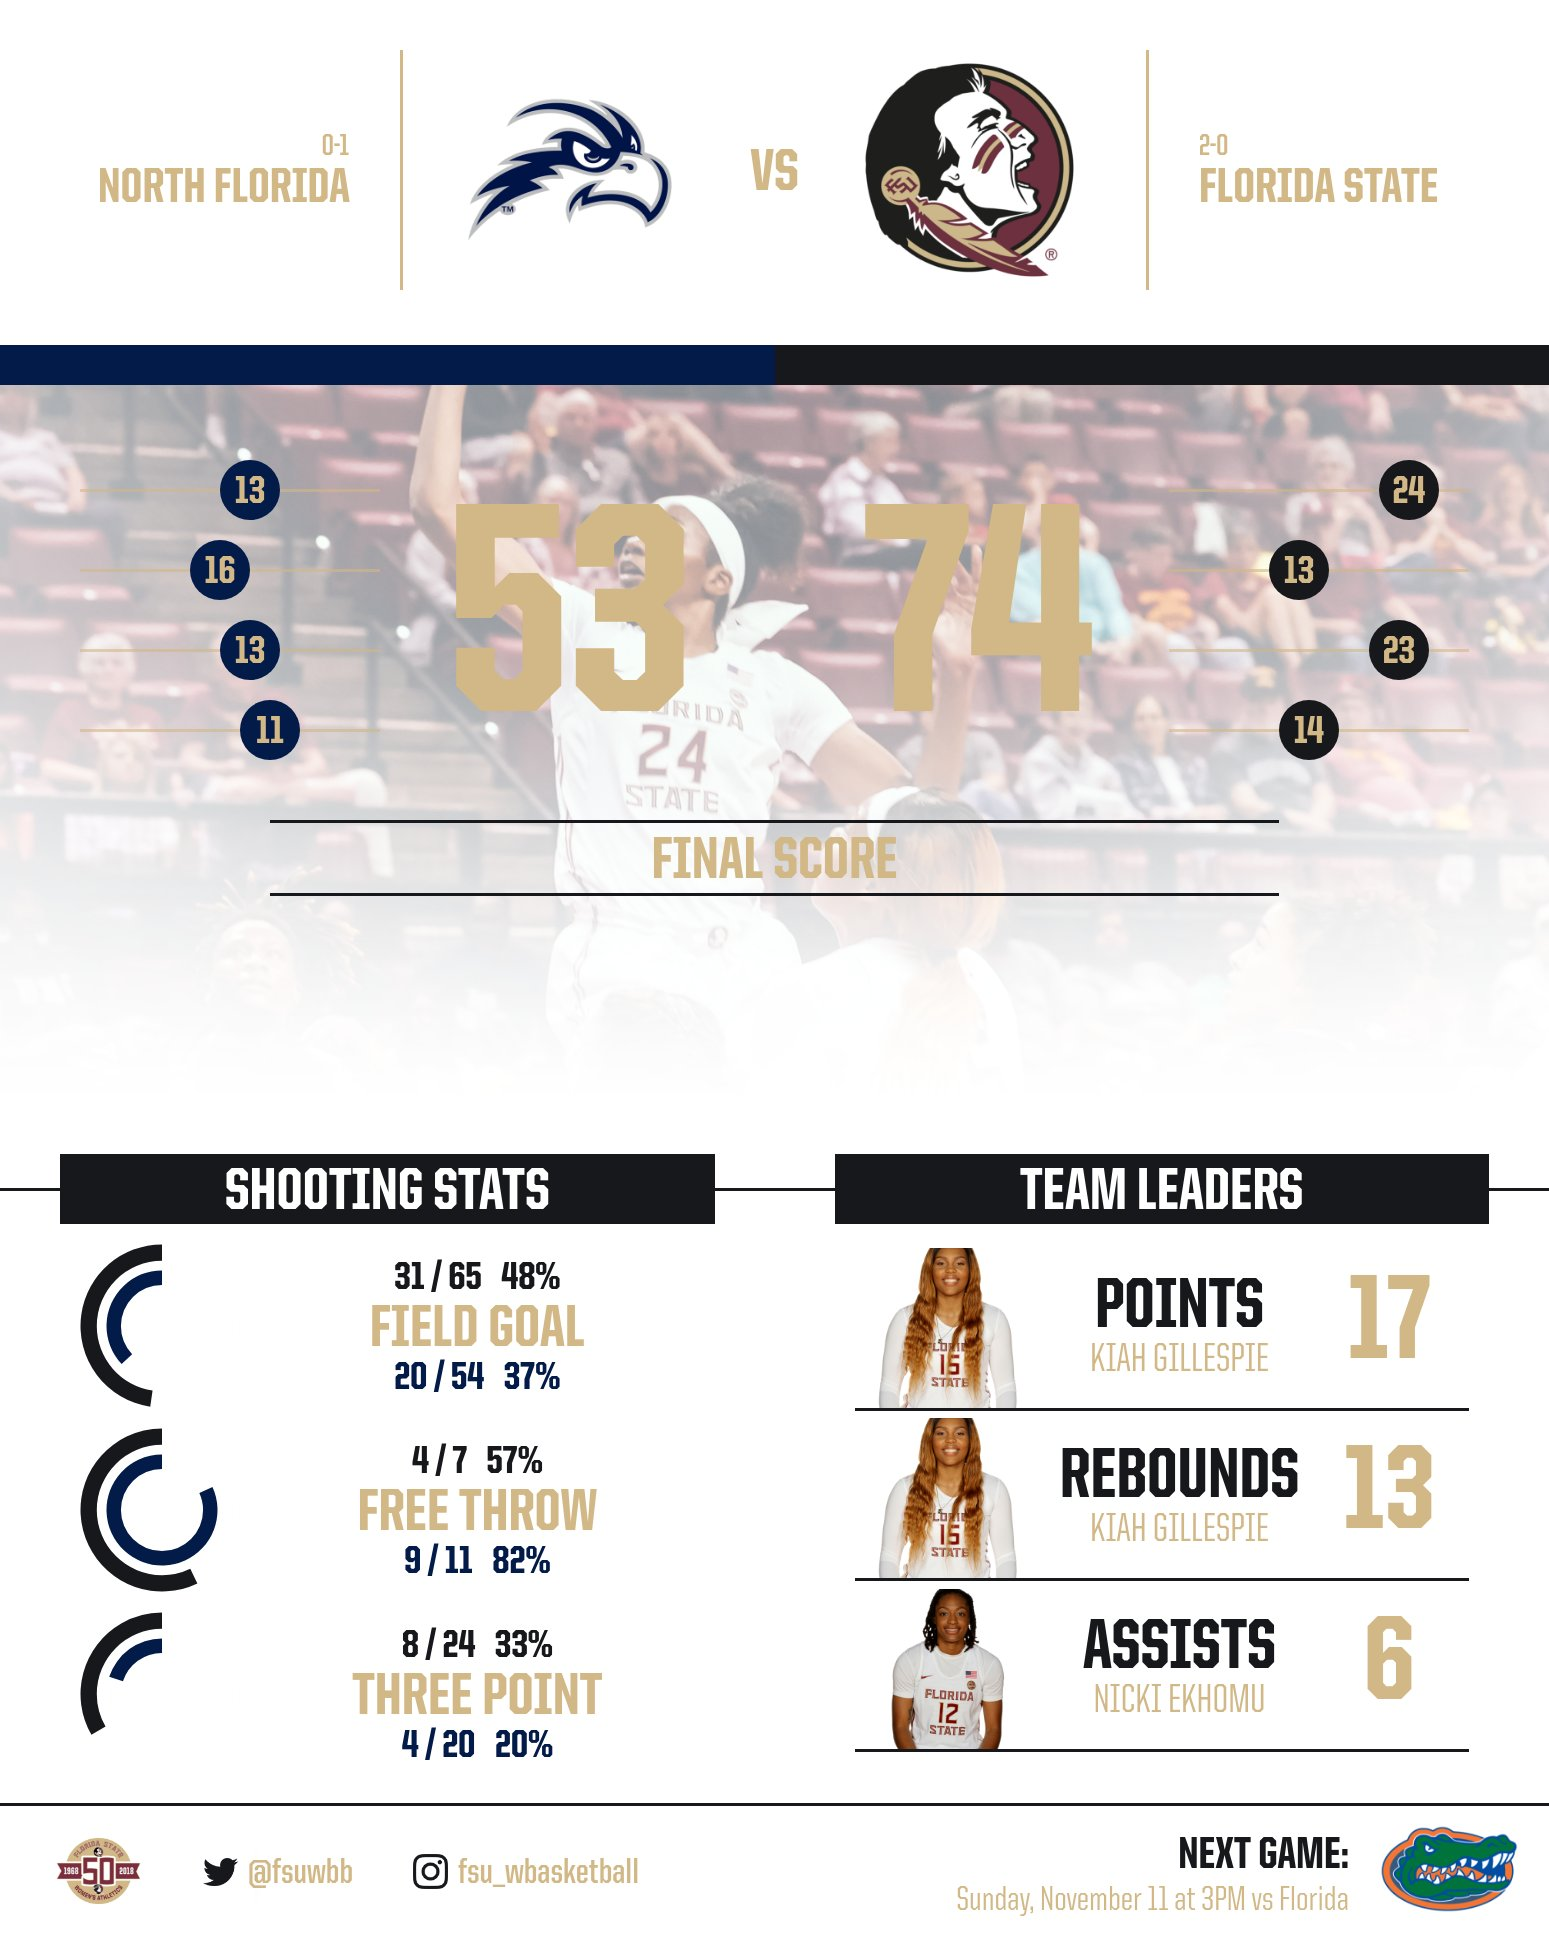 Gillespie's Double-Double Sparks FSU Victory